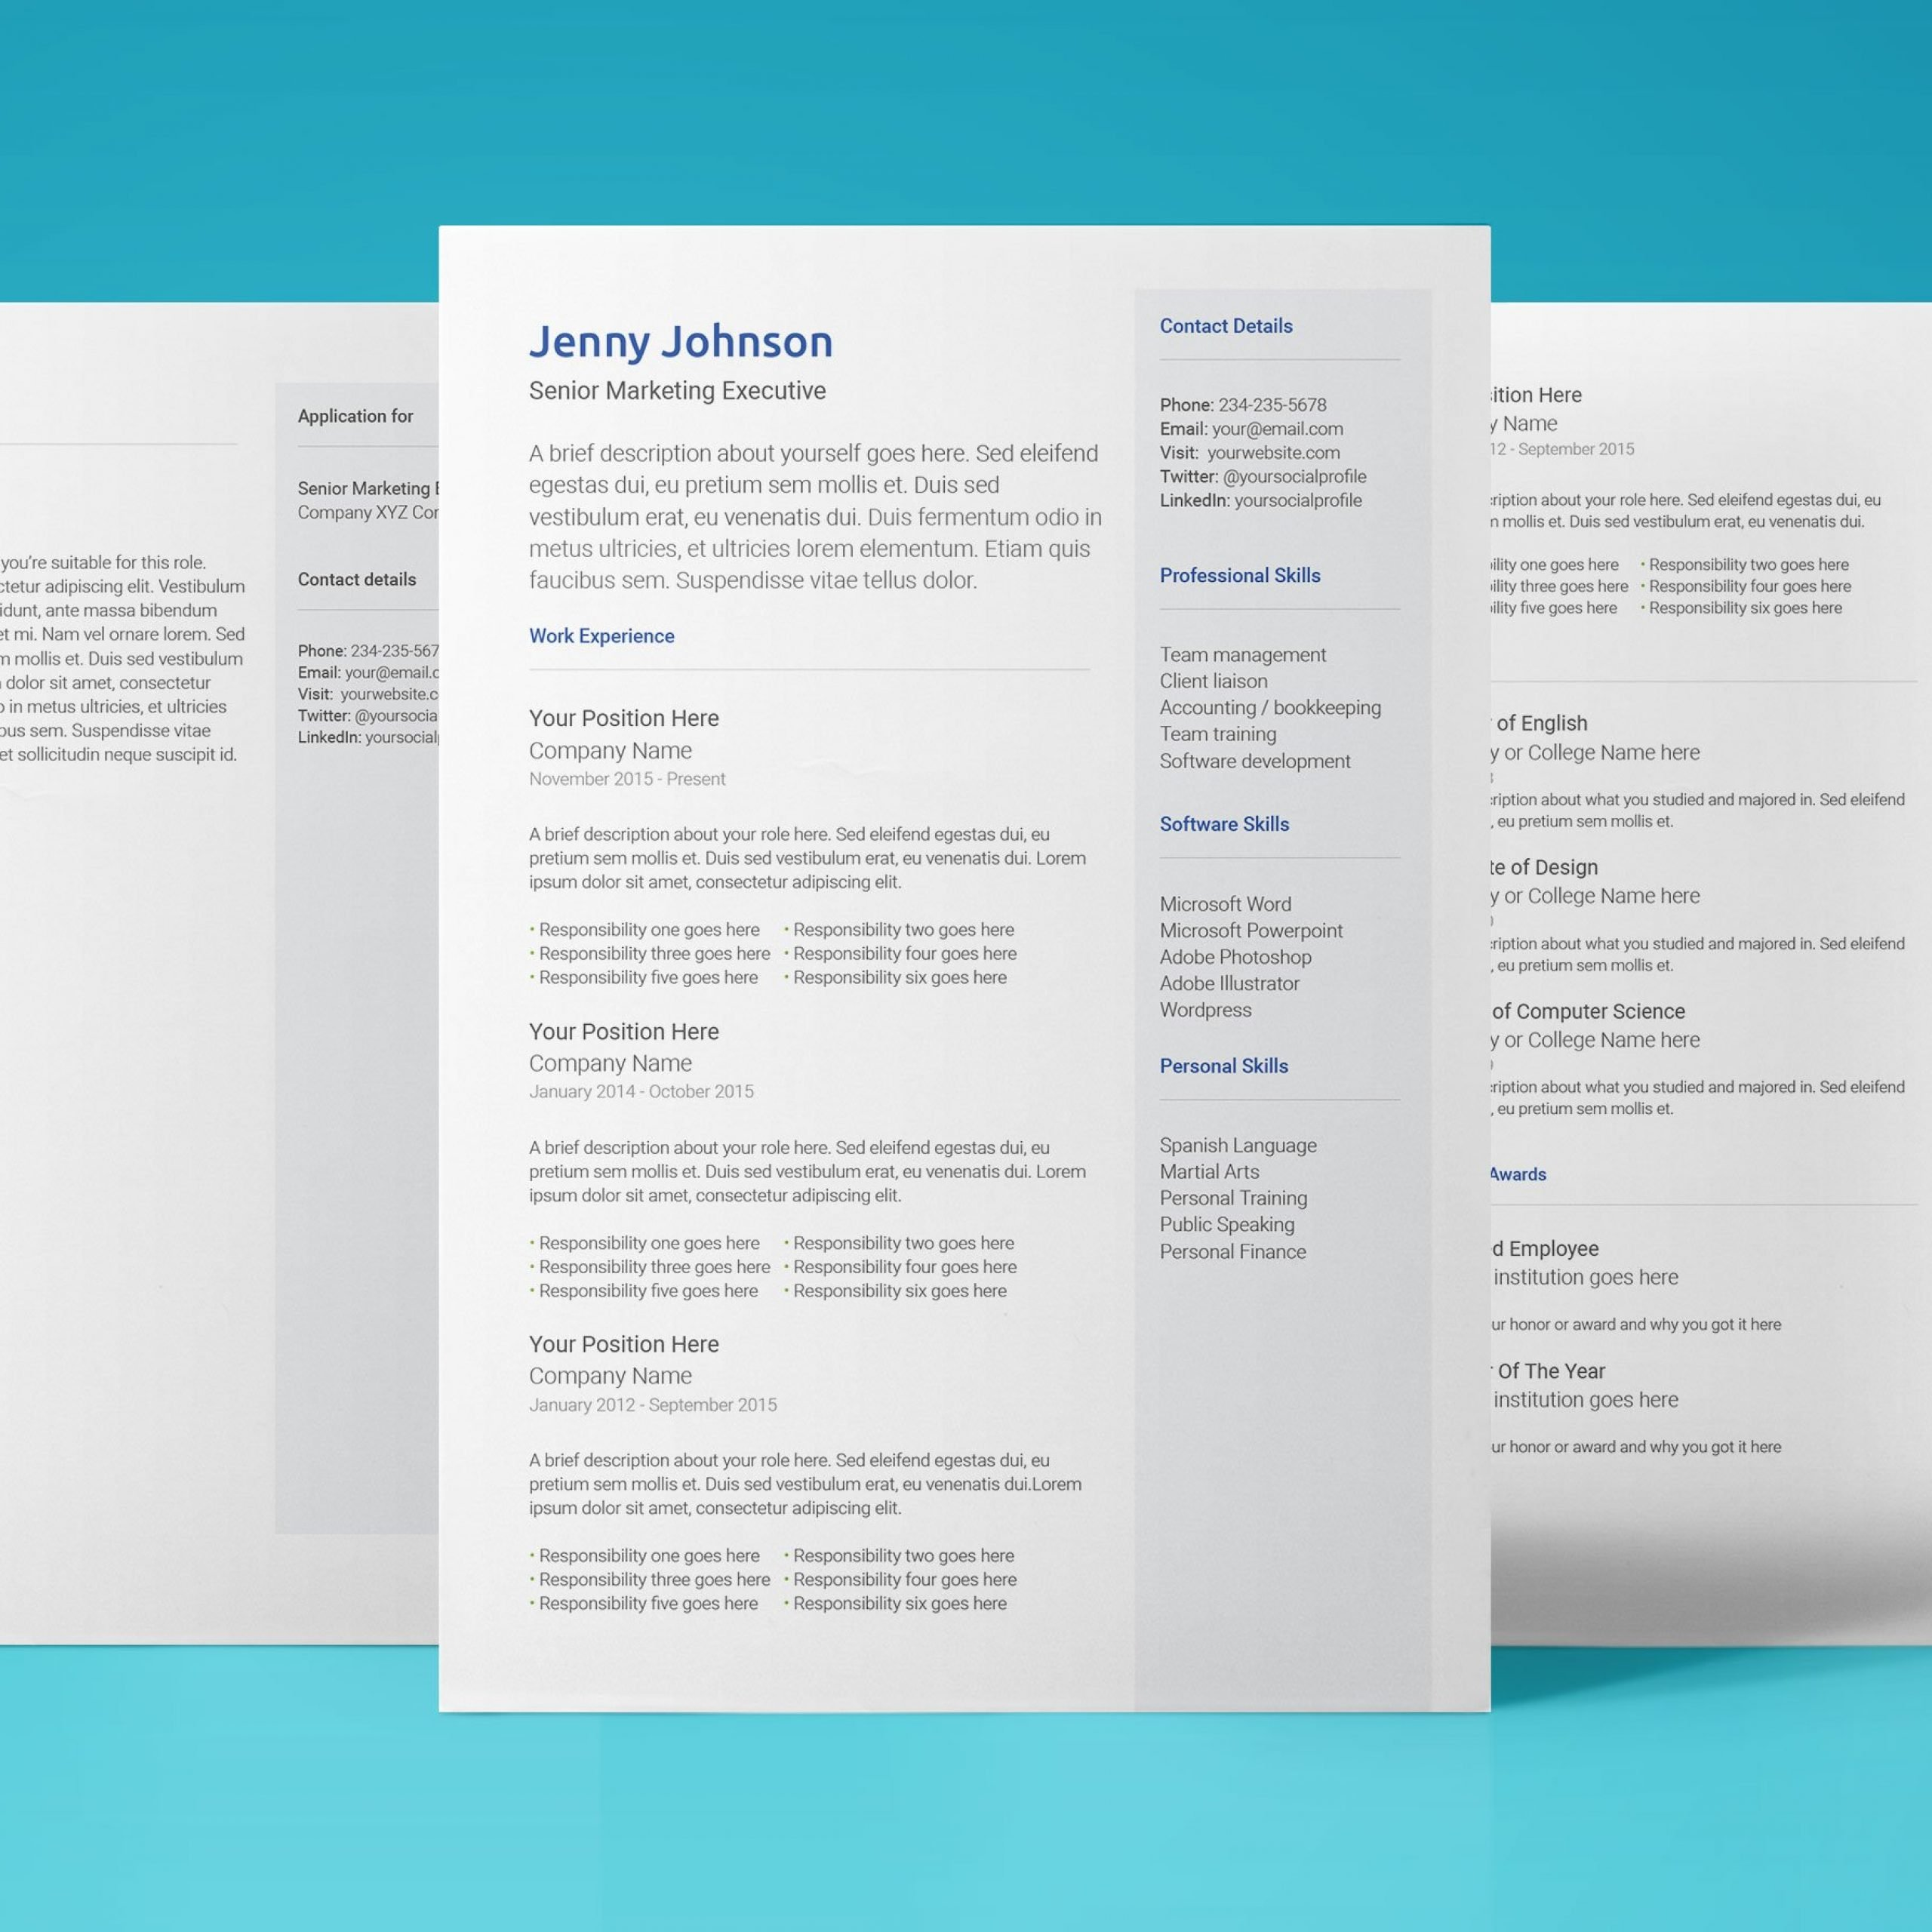 free google docs resume template use upresume templates with photo neptune cv scaled test Resume Google Docs Resume Template With Photo